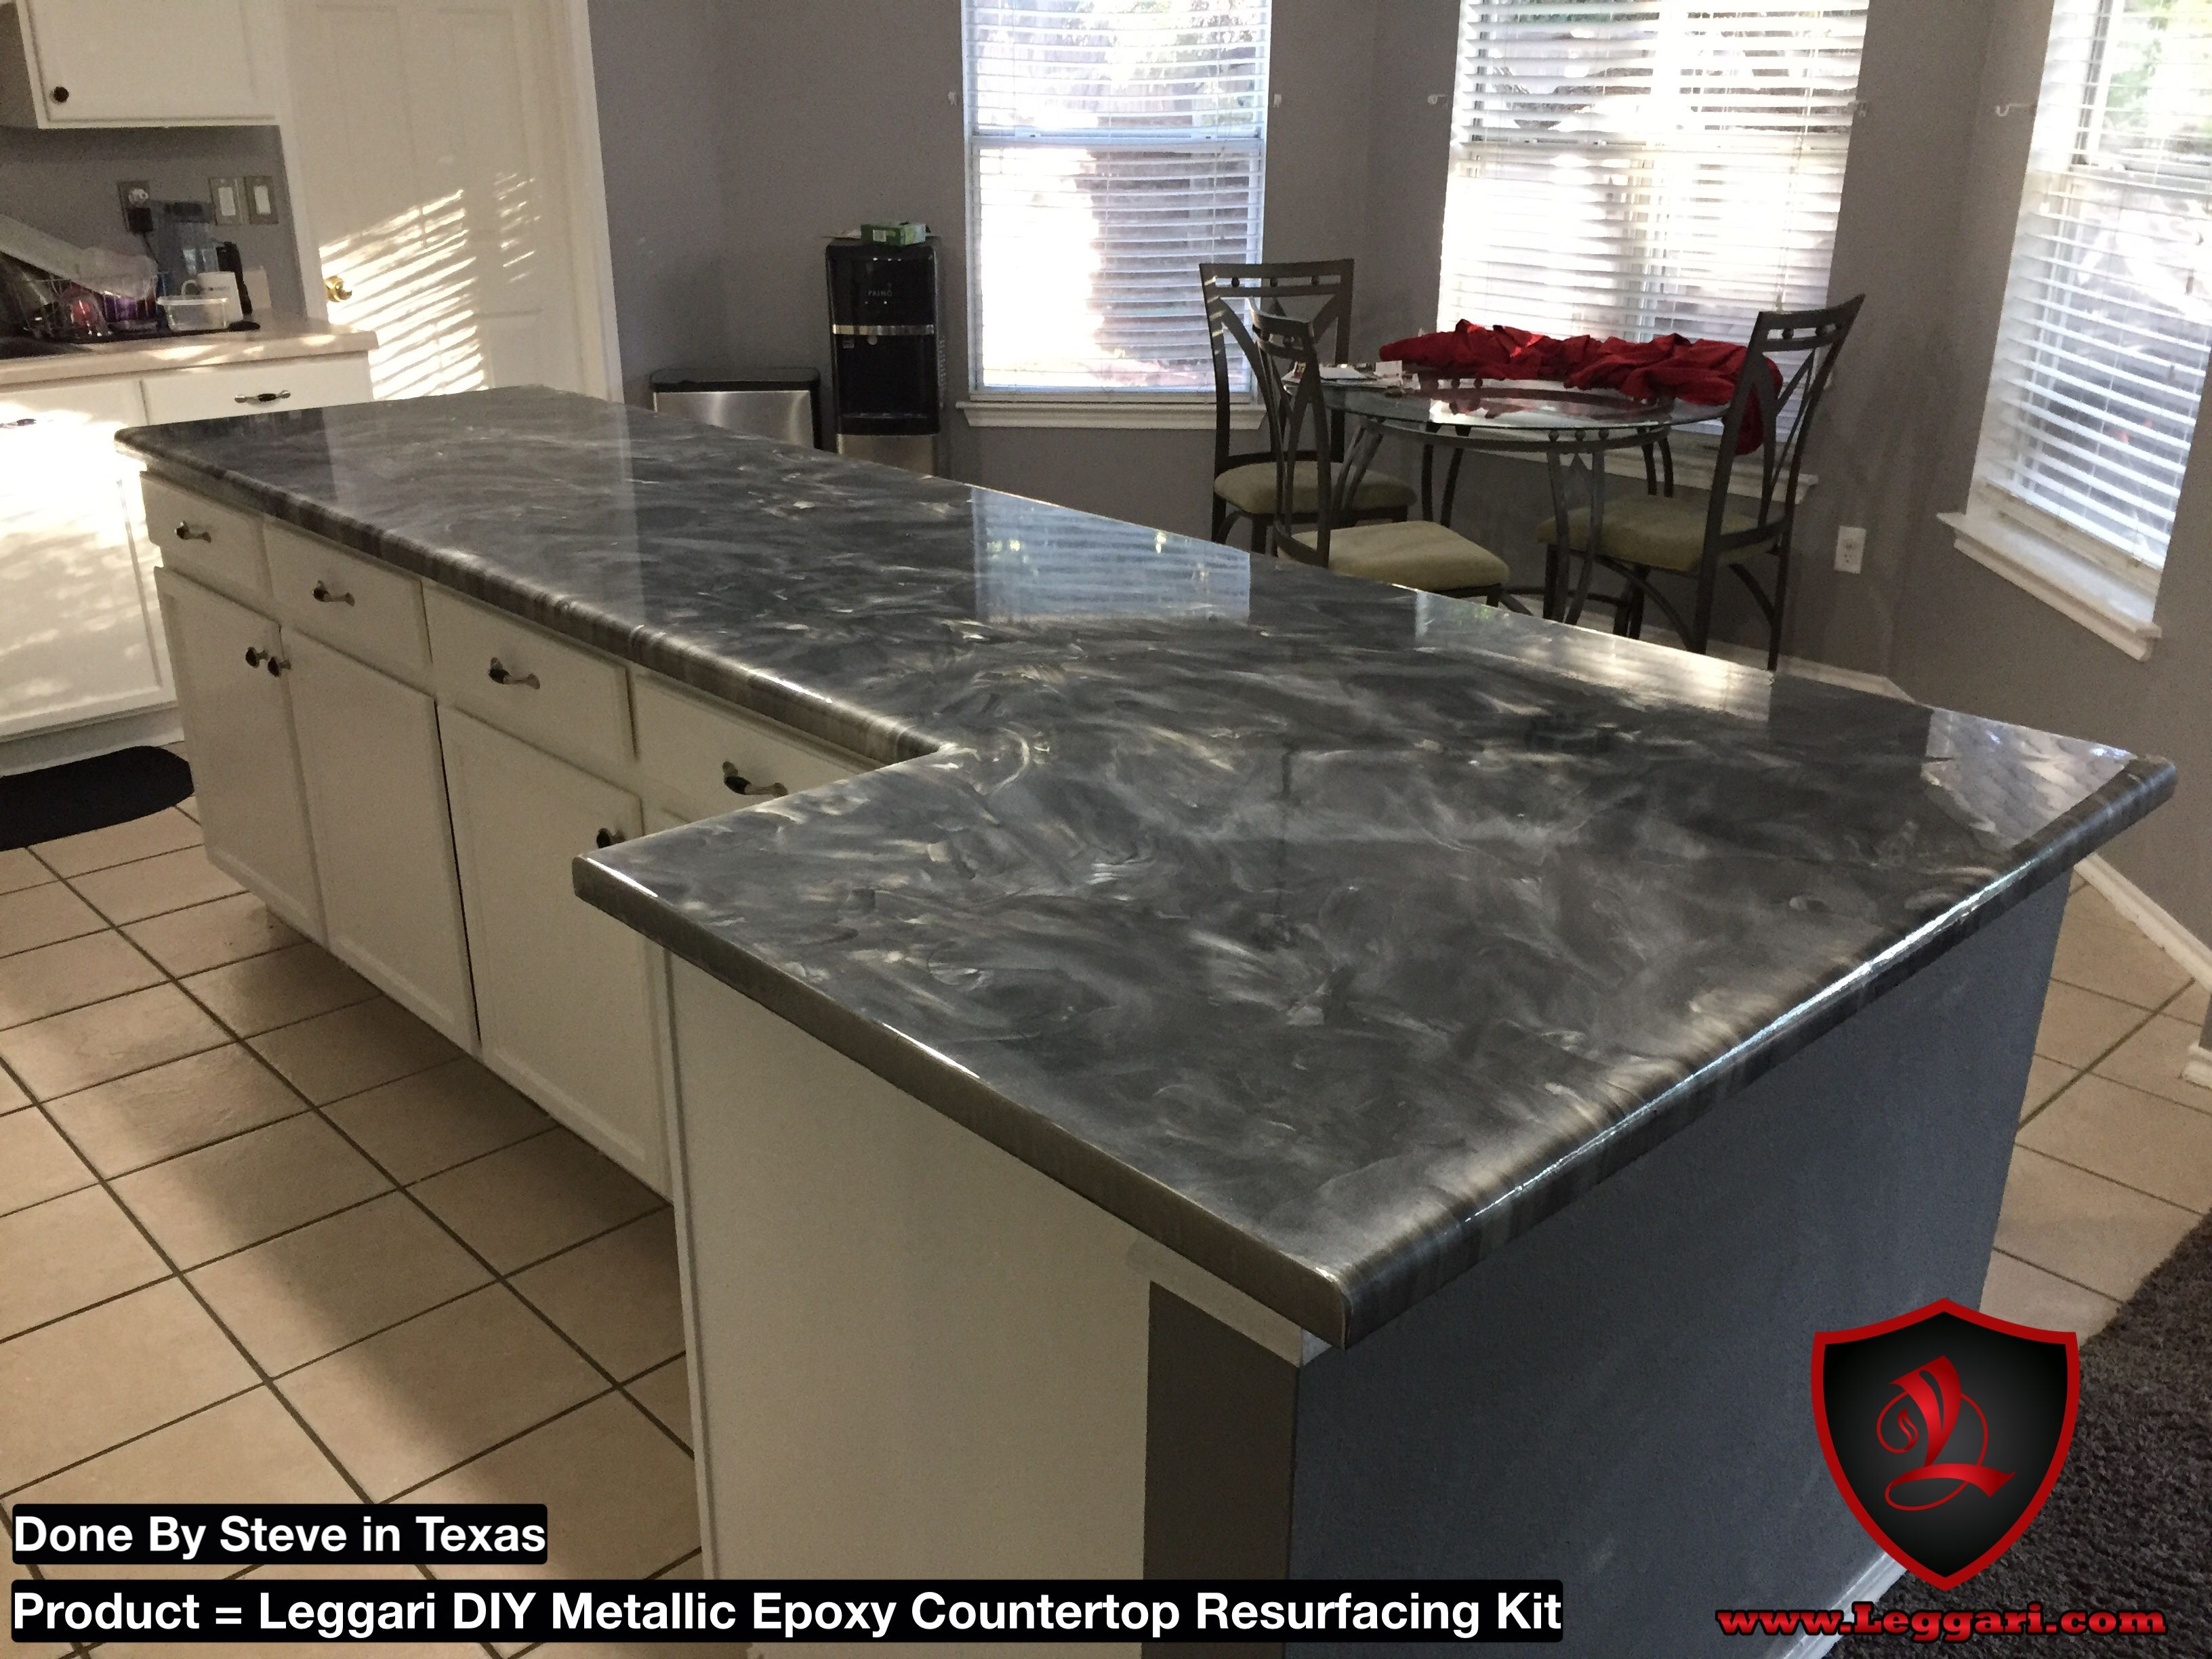 leggari diy countertop products this epoxy a coated the resurfacing metallic was kit with countertops pin